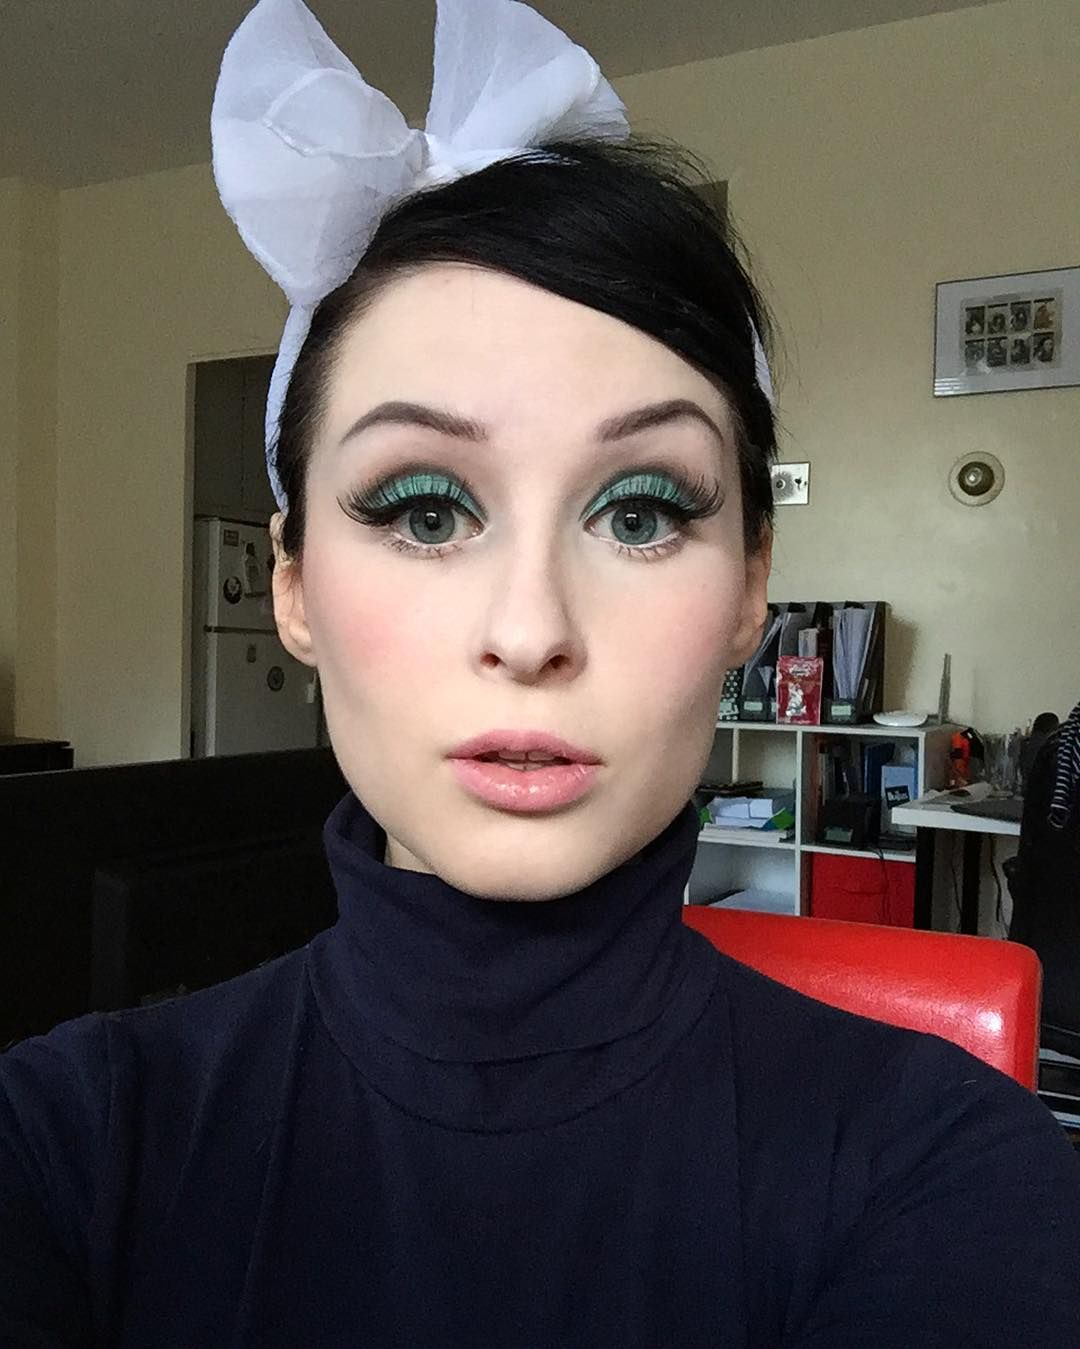 """2,284 Likes, 33 Comments - KirstieMyDear (@kirstiemydear) on Instagram: """"Created this 60s-inspired look using some of the tips from @plexusbooks """"Hollywood Secrets"""" book by…"""""""